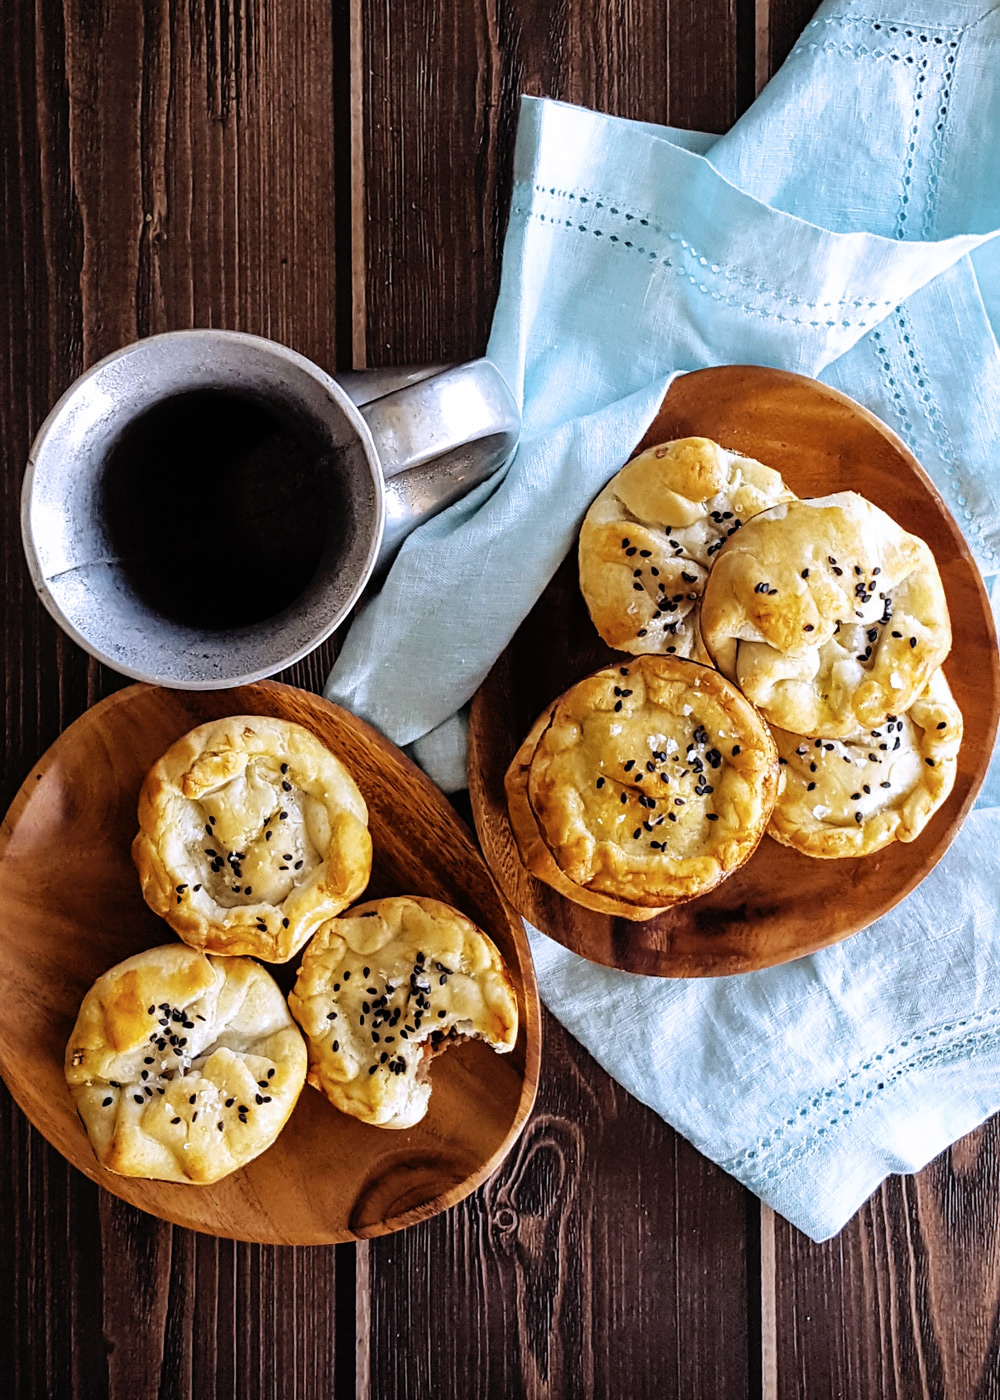 Two wooden plates of hand pies one a blue napkin with a pewter mug. | FeastInThyme.com